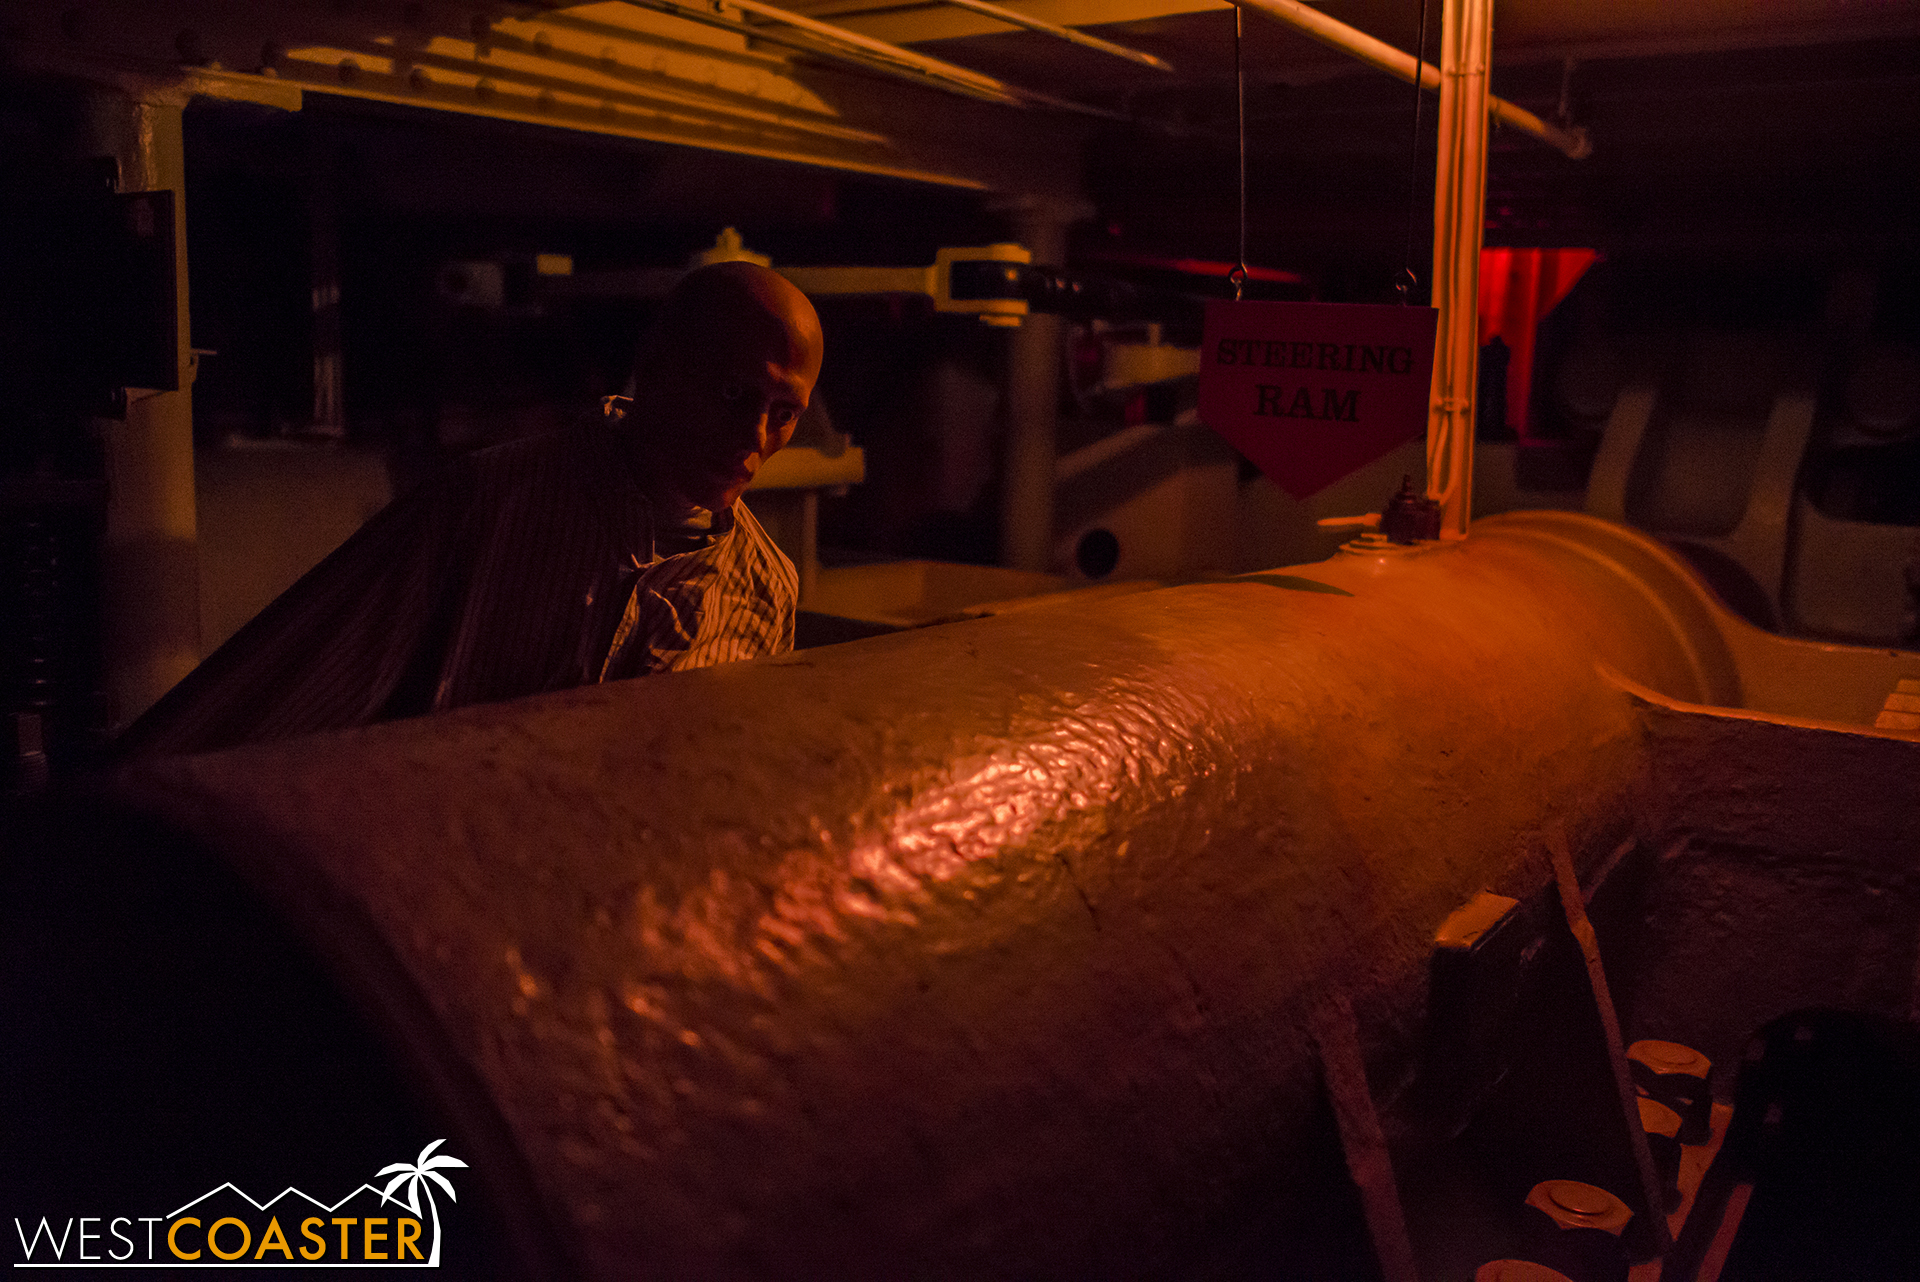 The maze goes through parts of the ship that have not previously been open during the Dark Harbor event.